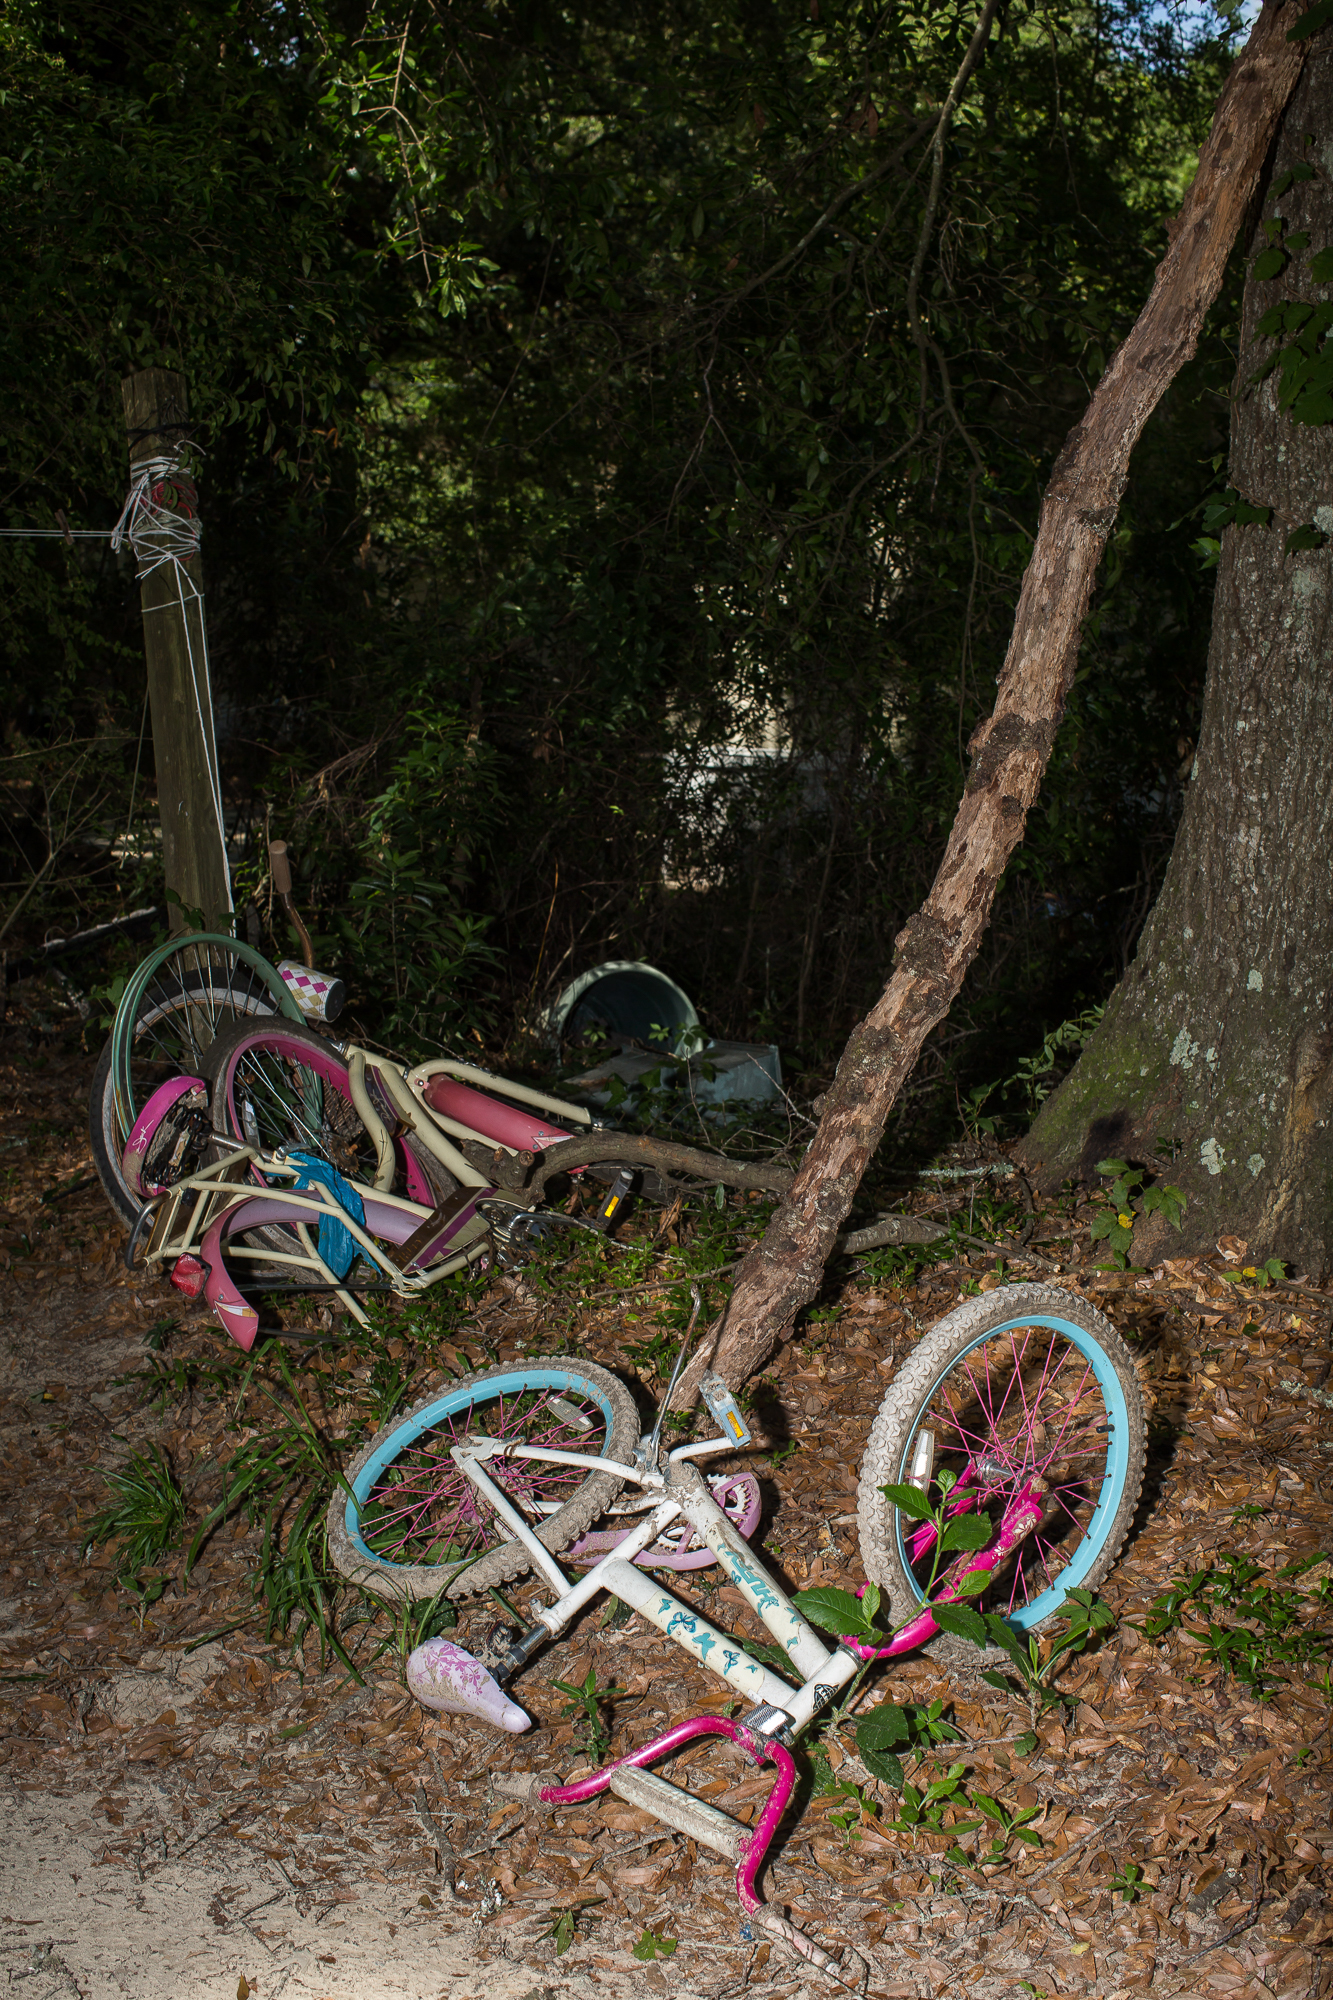 Children's bicycles in a heap by the trailer in Ravenel Mobile Home Park, where Betty Mungin, 55; Alexis Mungin, 29 and her unborn twins; and Armani Mungin, 8 were shot and killed in May 2016.